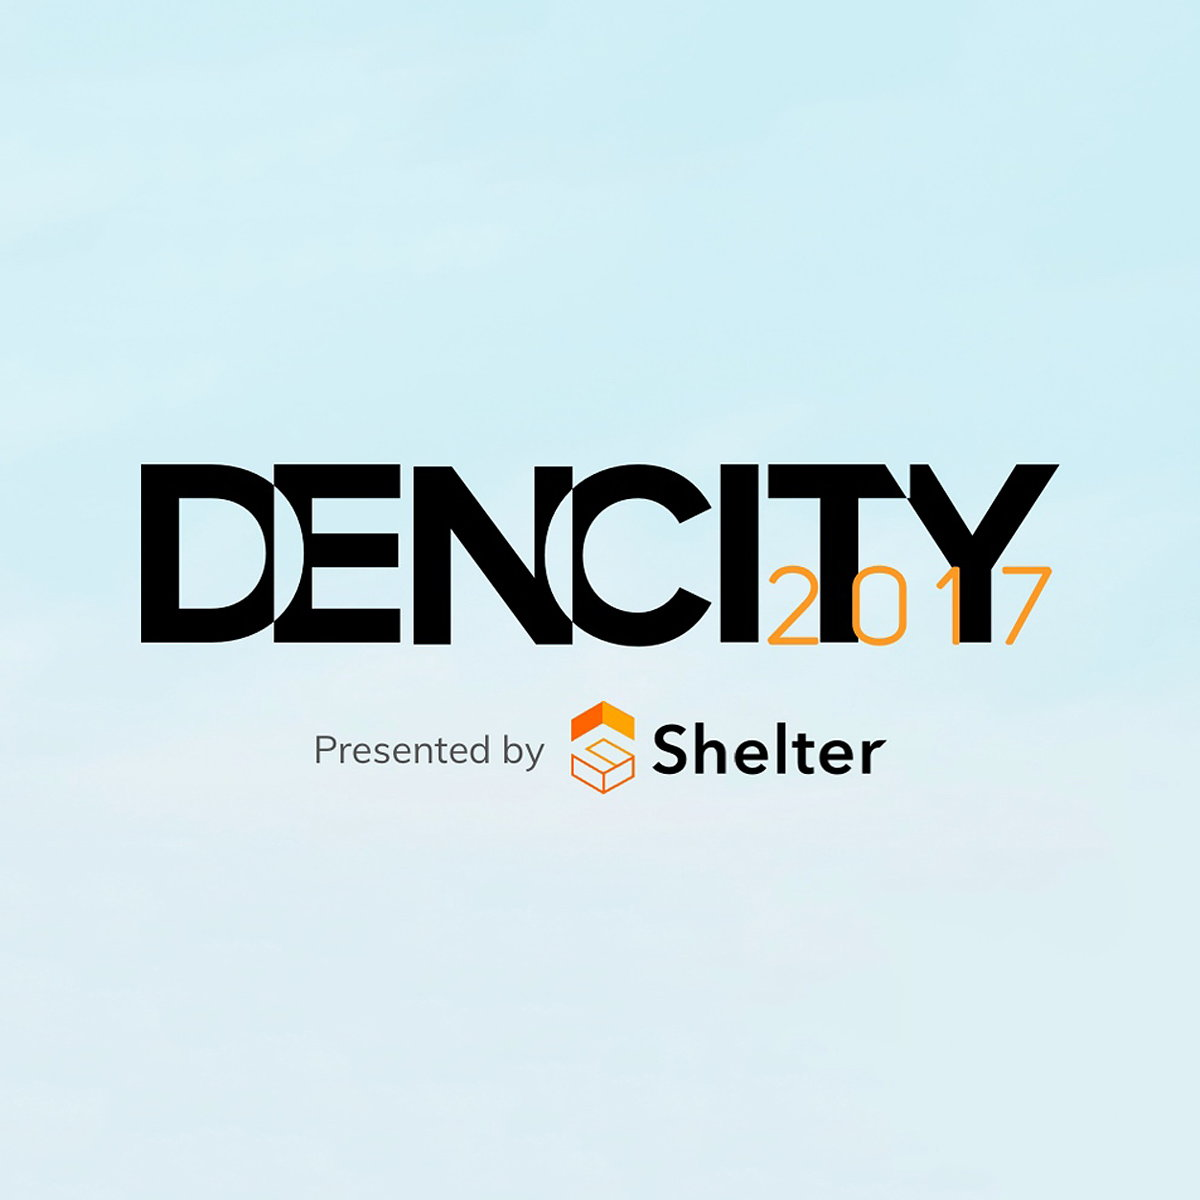 2017 Dencity Competition - A Competition to Improve Slums Worldwide